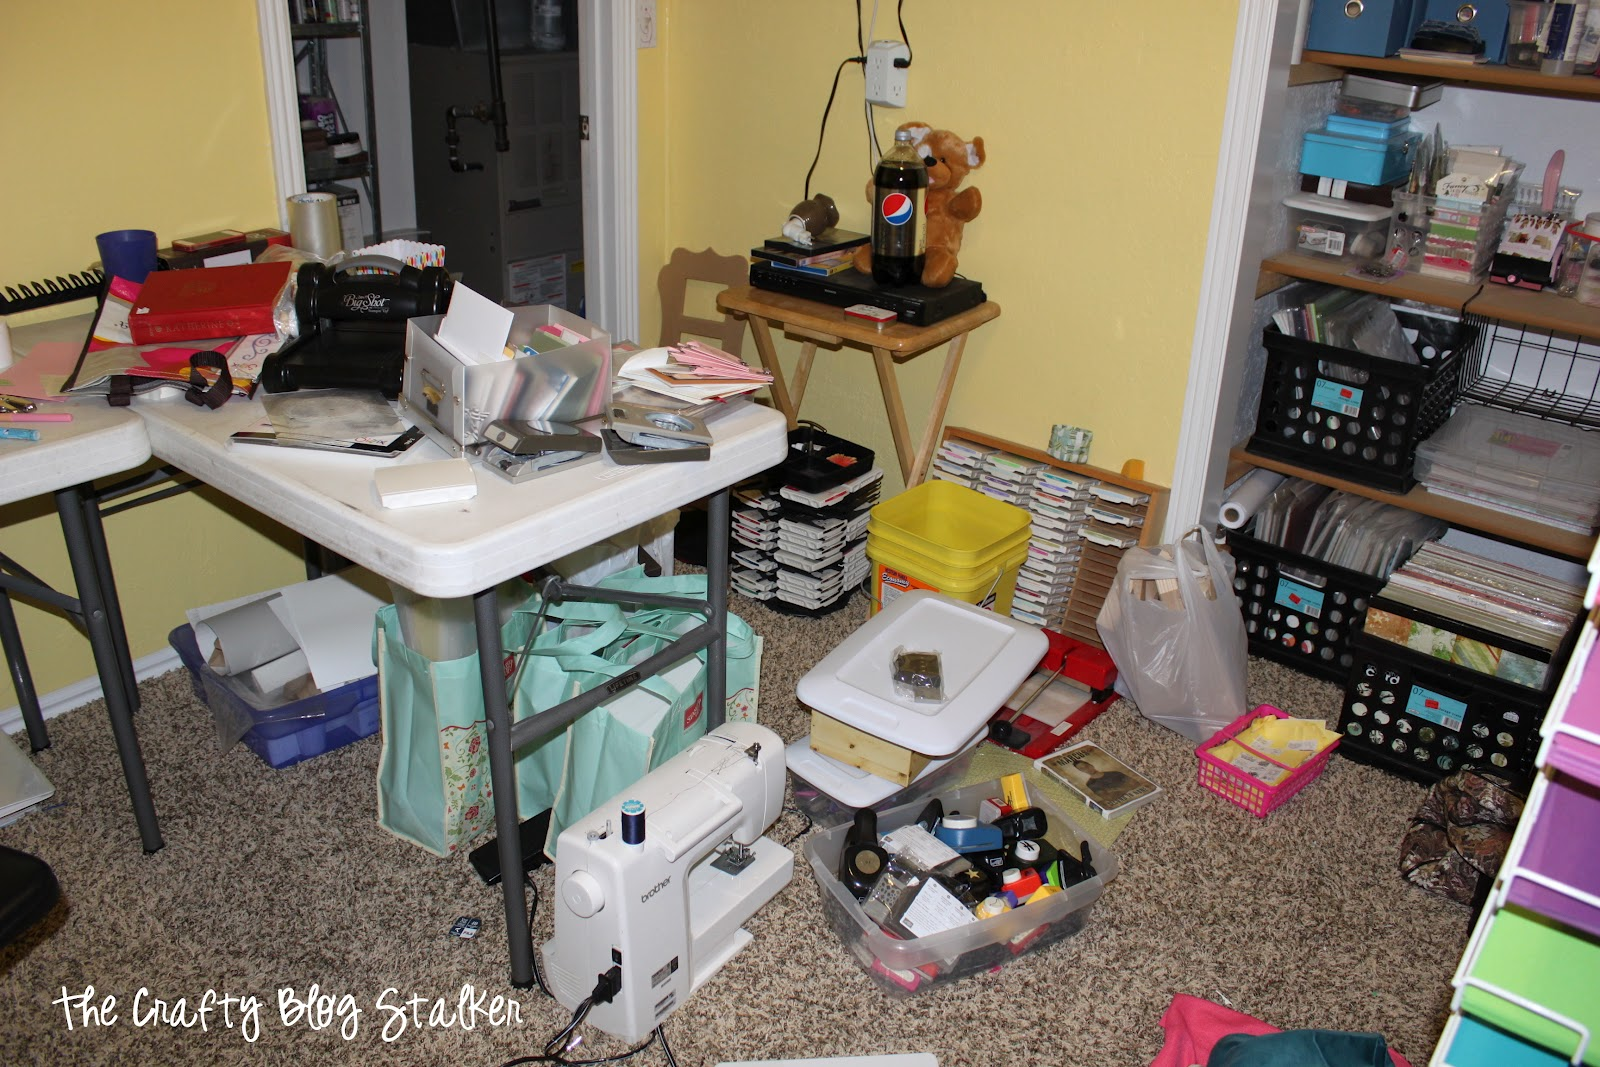 Take a tour as I clean up my Craft Room and share some DIY Storage Solutions and how I organize my crafting supplies. Simple DIY craft tutorial ideas.